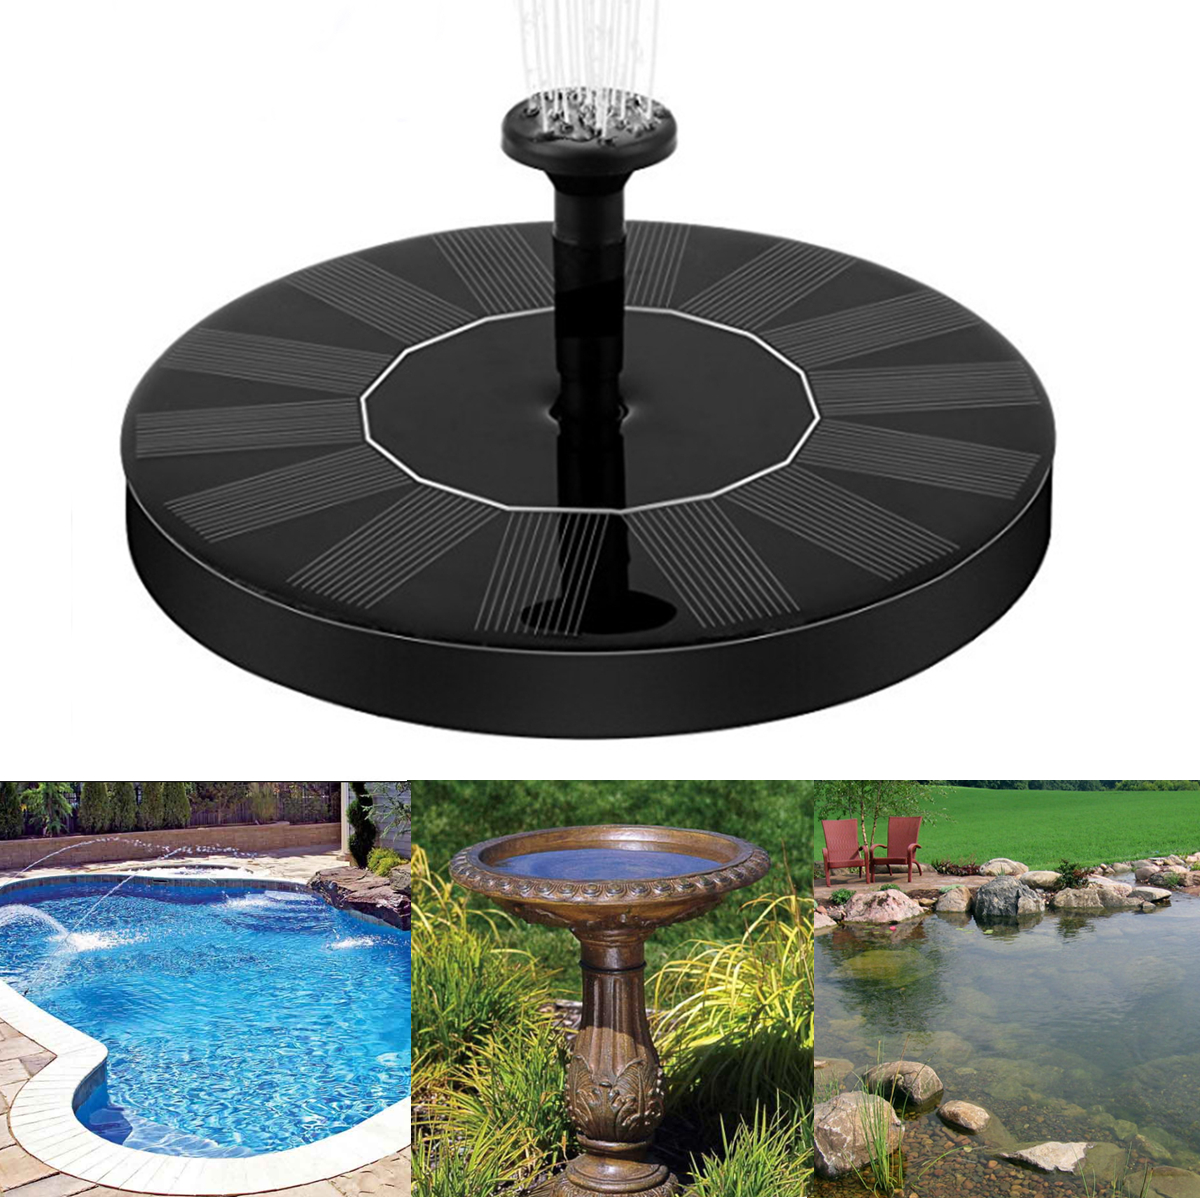 Solar Power Fountain Pump Kit Pool Garden Pond Watering Pumps Water Pump